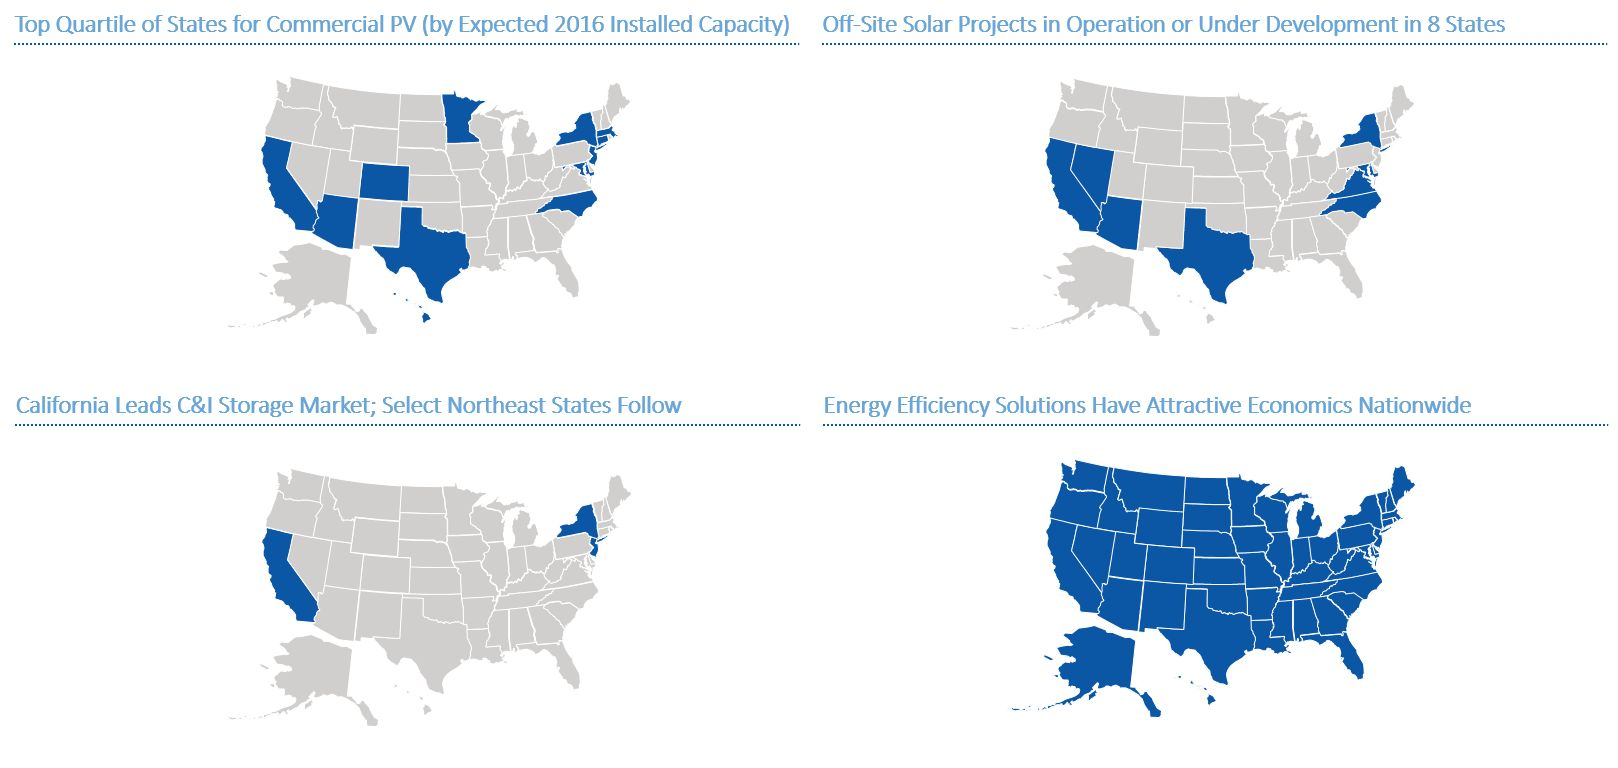 viability of individual energy management solutions varies state by state